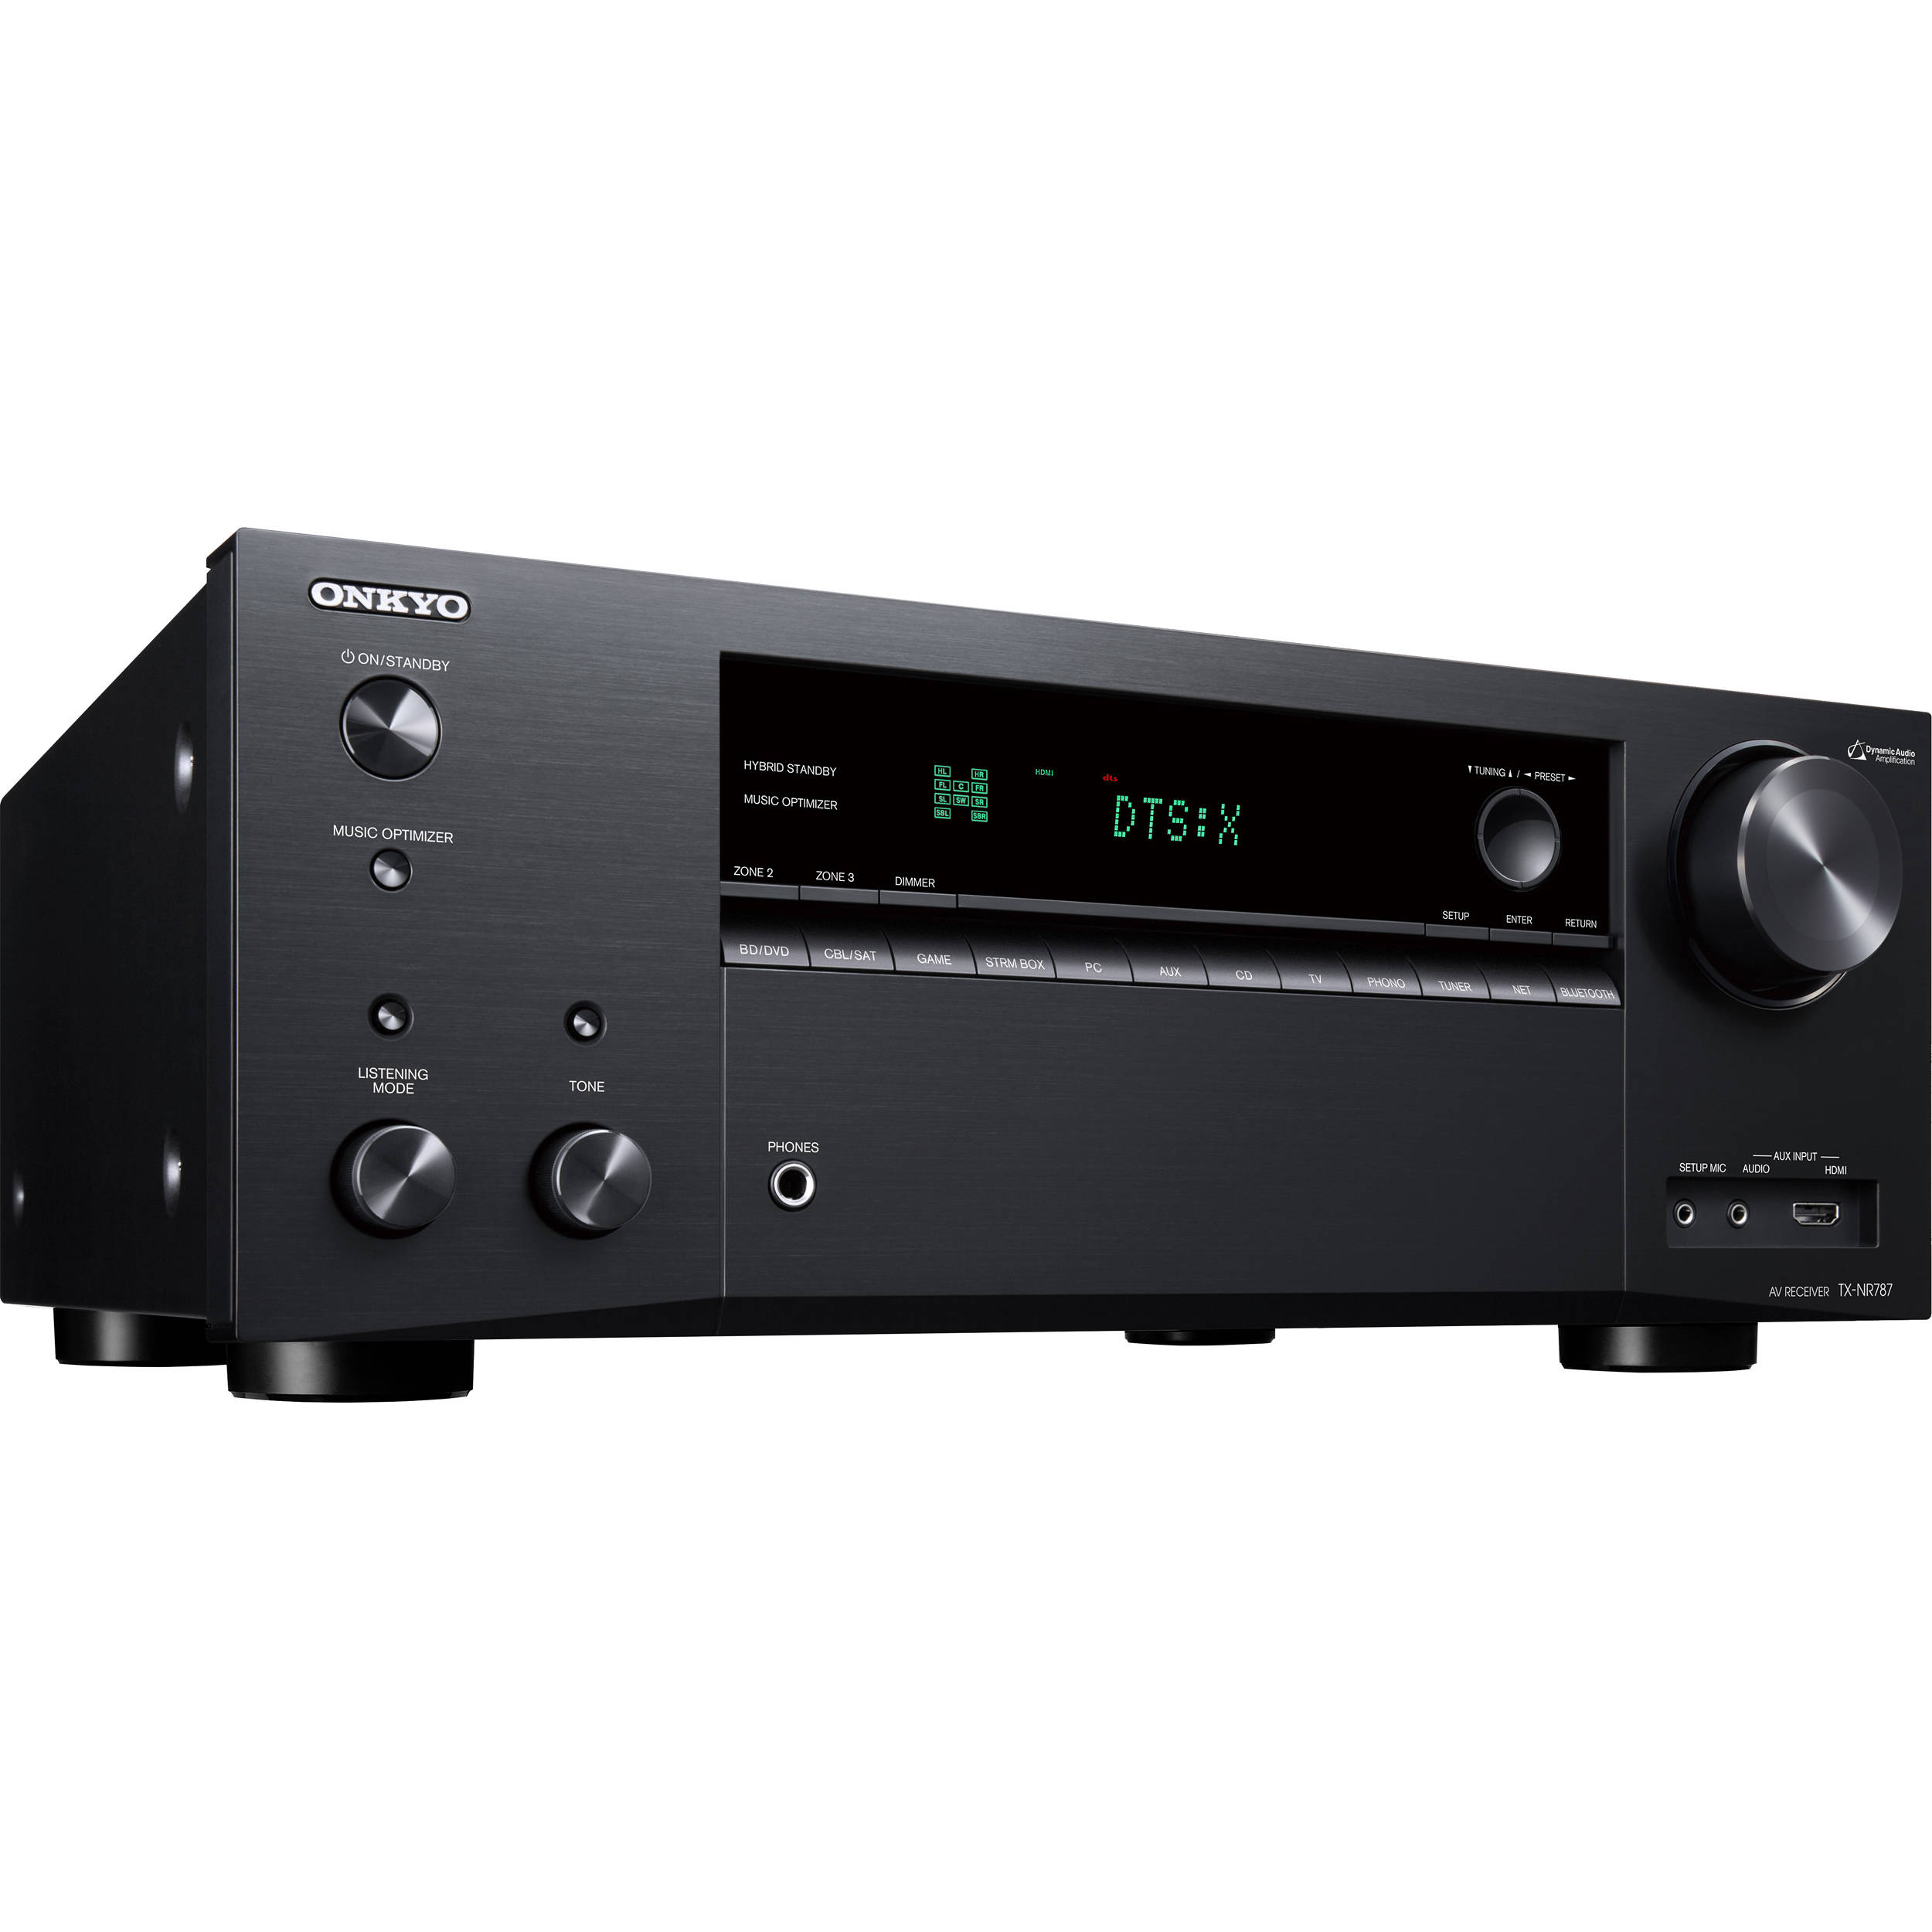 Onkyo TX-RZ630 9 2-Channel Network A/V Receiver